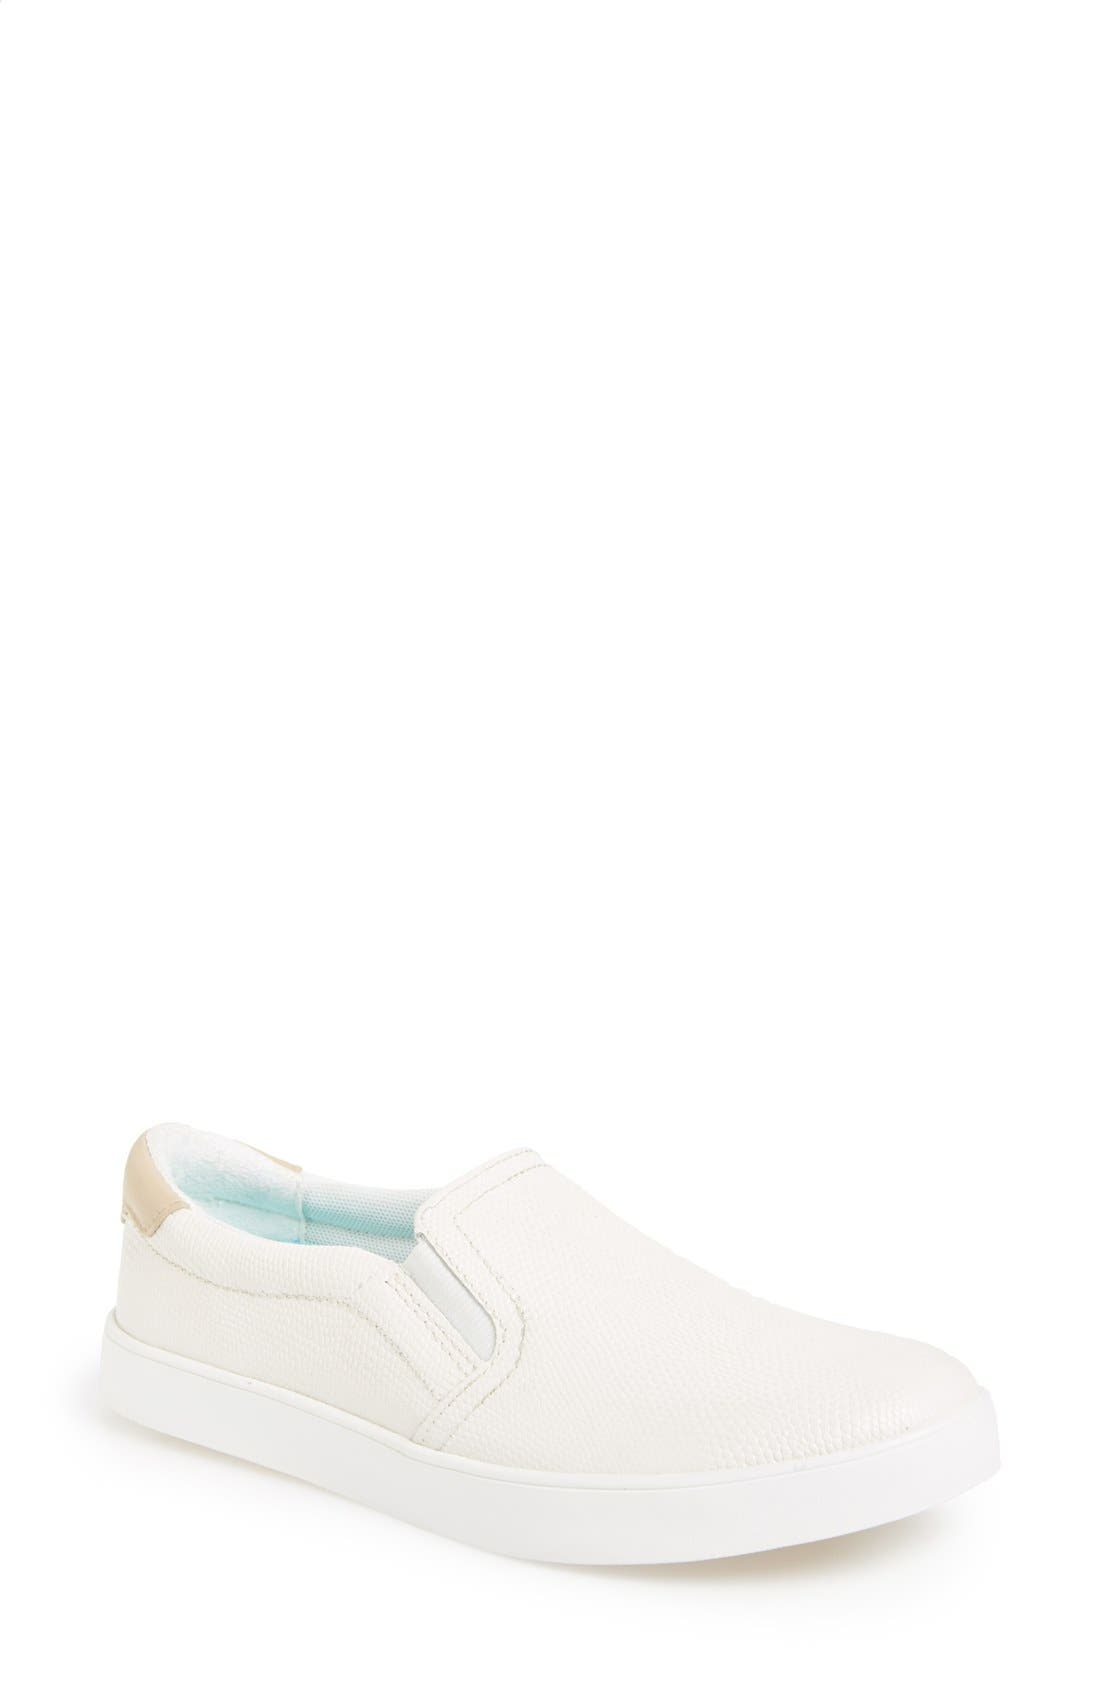 Original Collection 'Scout' Slip On Sneaker,                             Main thumbnail 31, color,